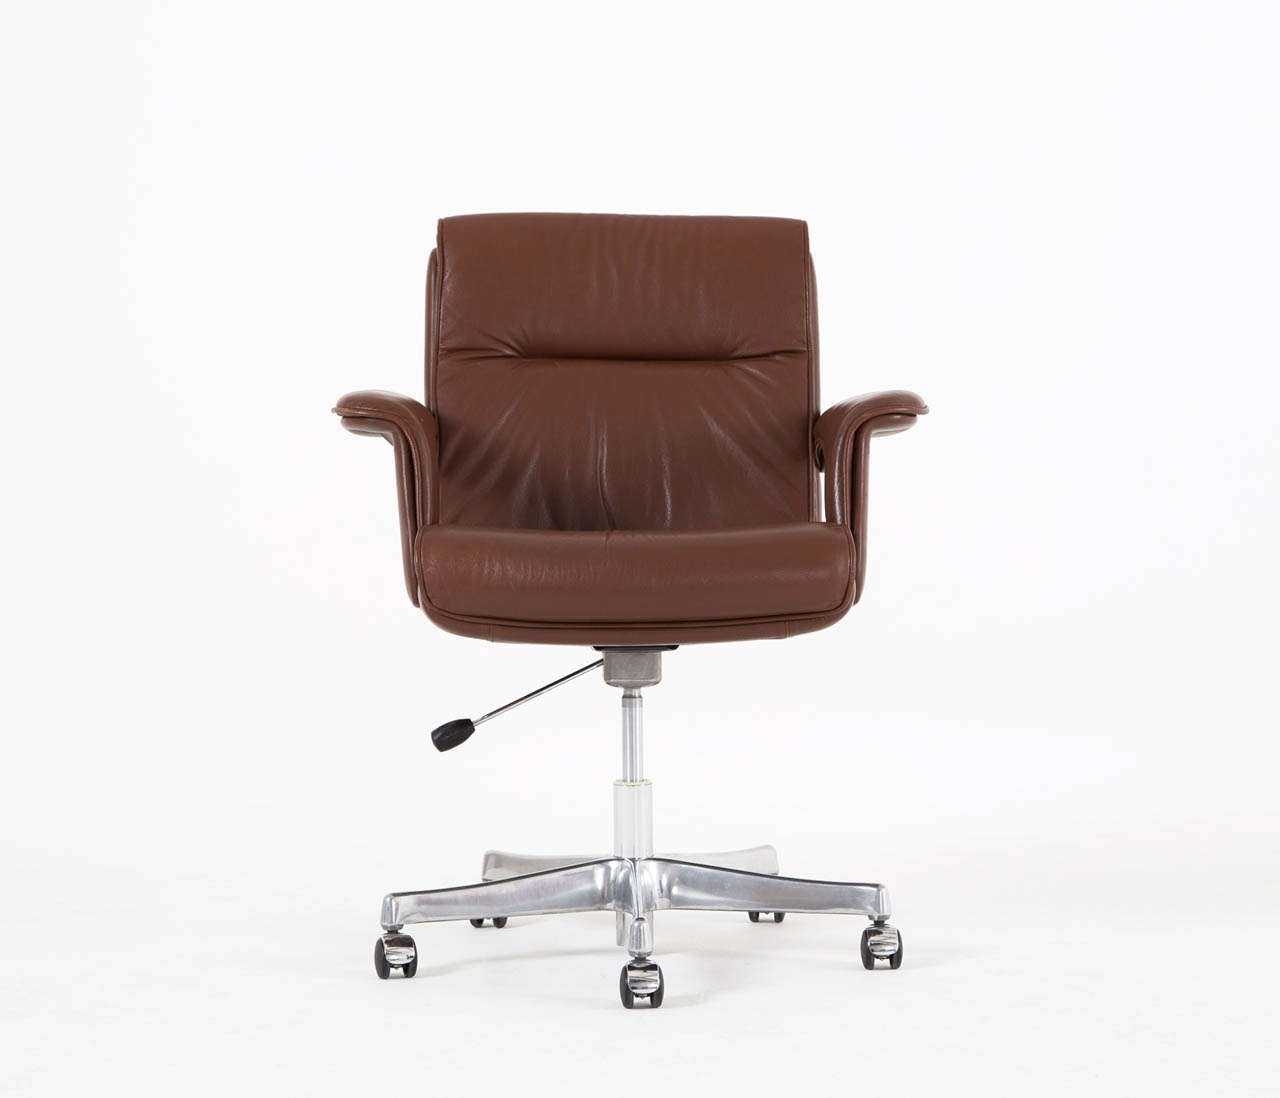 Brown Leather Desk Chair Executive Conference Desk Office Chair In Brown